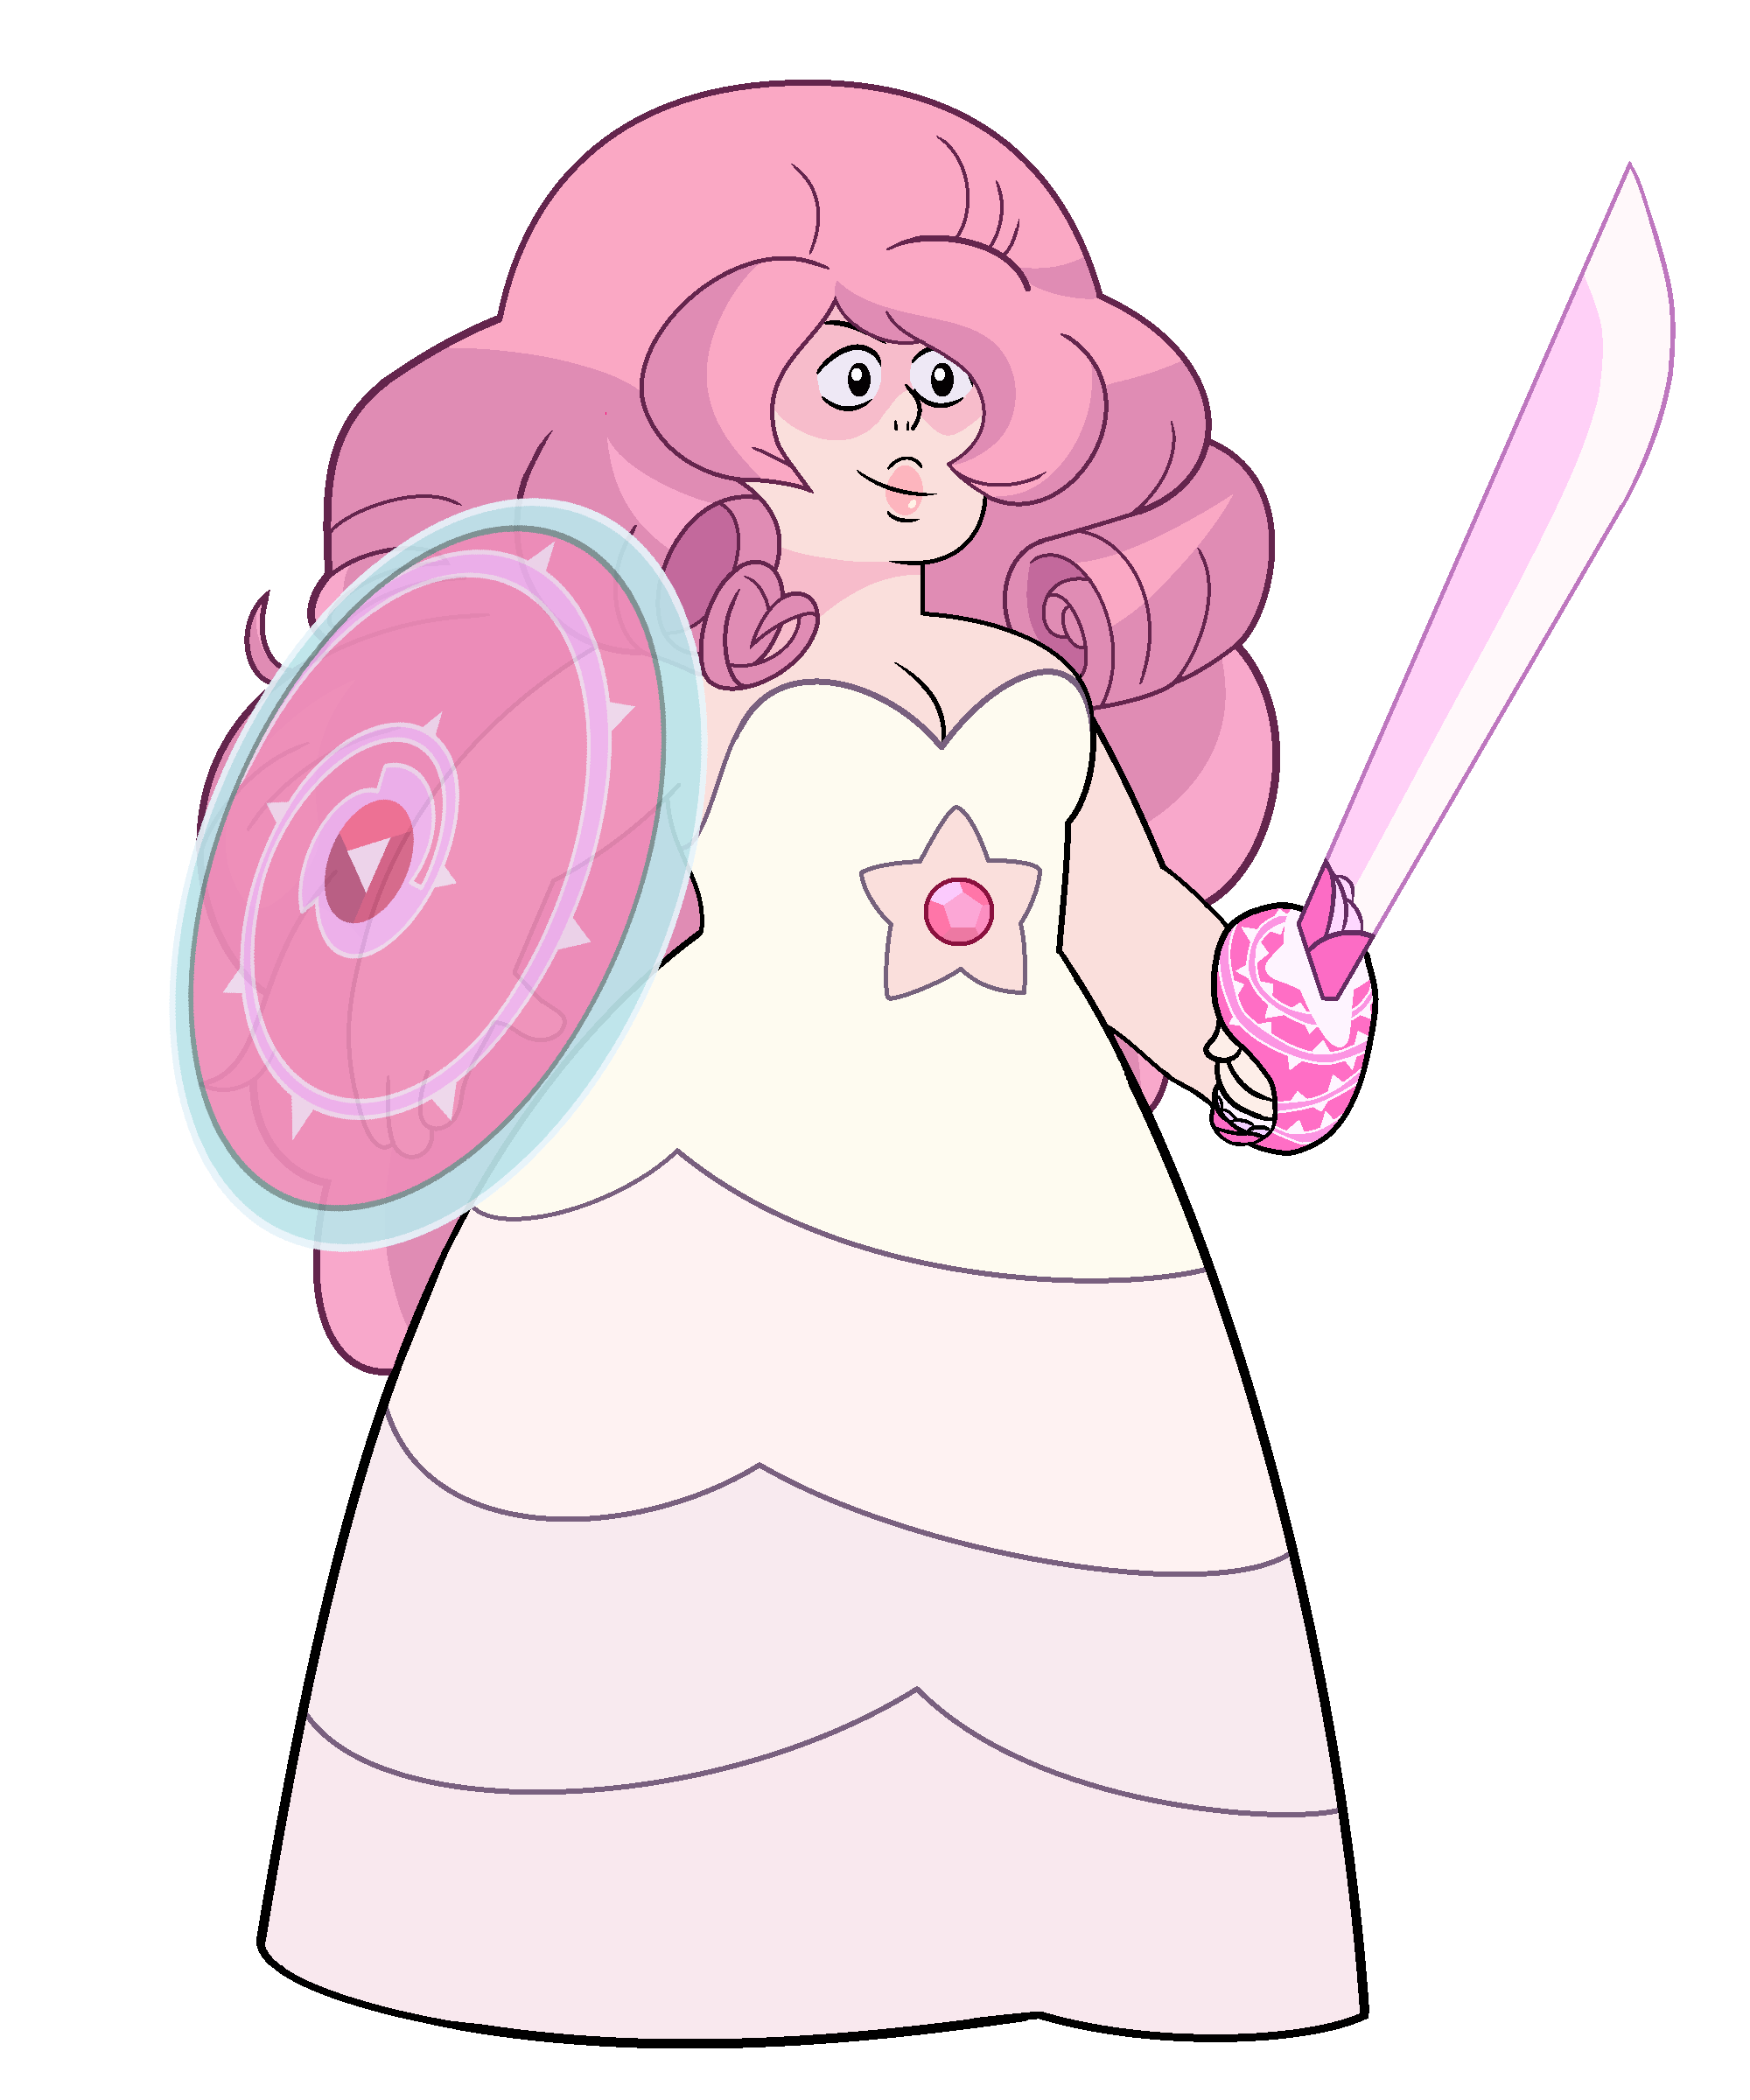 Rose Quartz | Steven Universe Wiki | FANDOM powered by Wikia